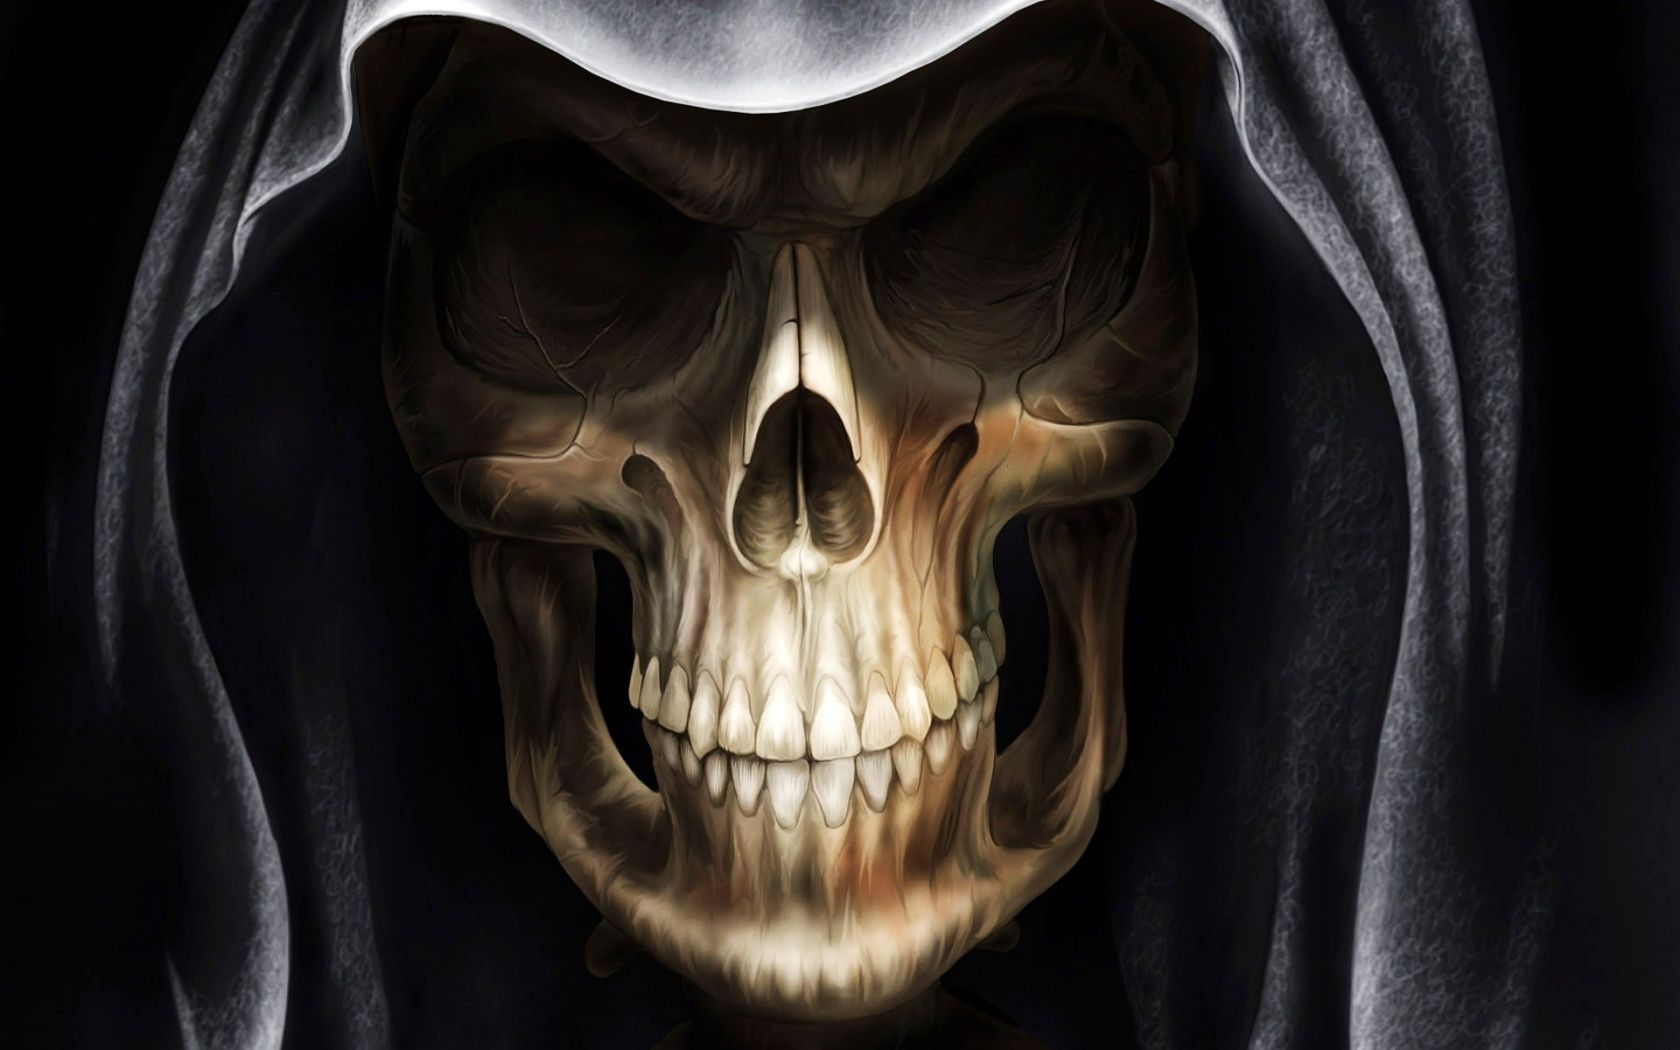 Popular Wallpaper Halloween Skeleton - a6d0530c746f260ed9b778d821b48bce  Image_213287.jpg